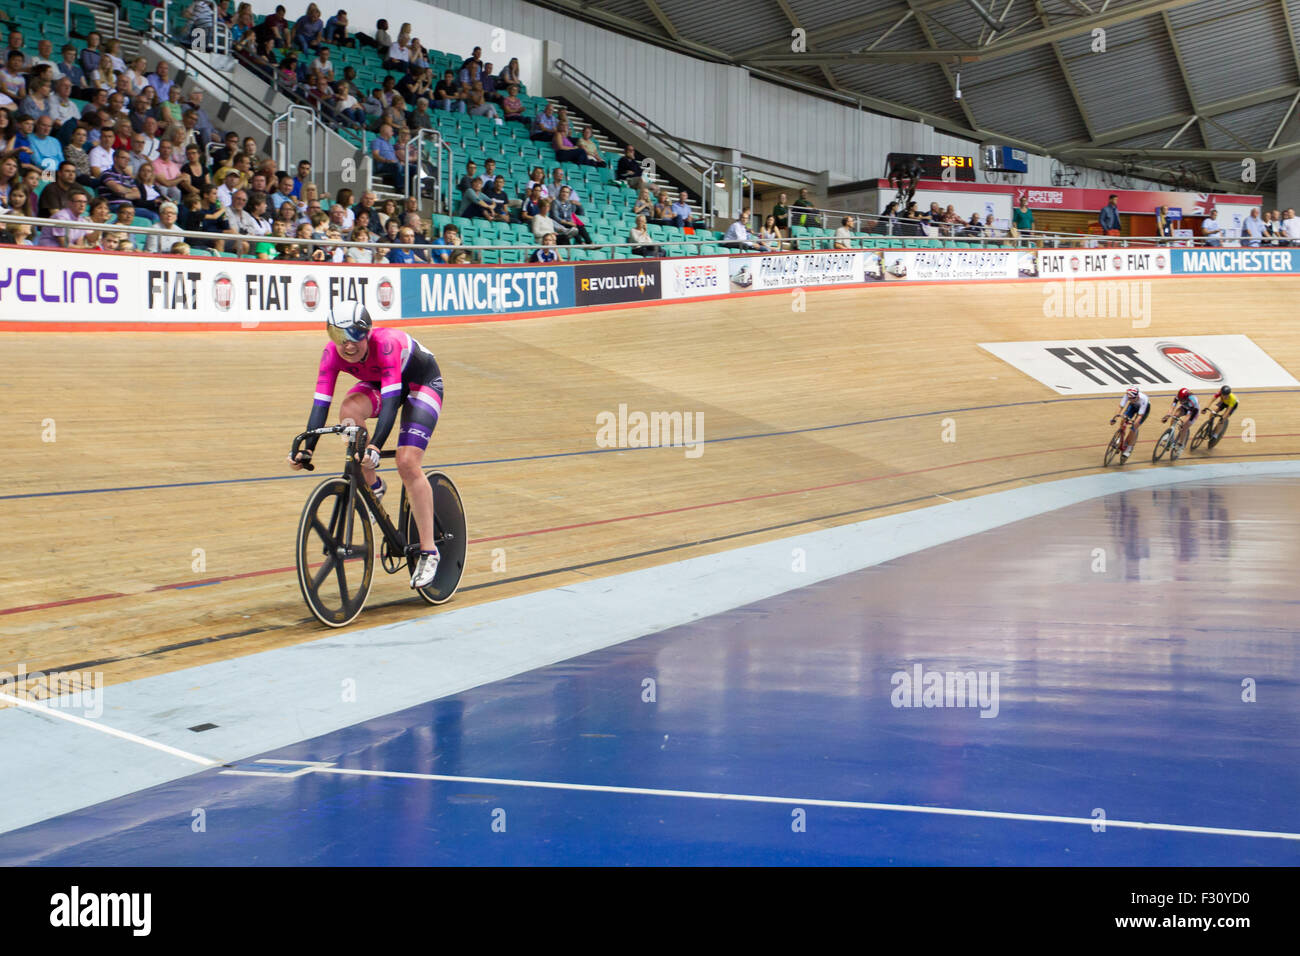 Manchester, UK. 27th Sept, 2015. Laura Trott wins Gold in the Points race during the 2015 British Cycling National - Stock Image